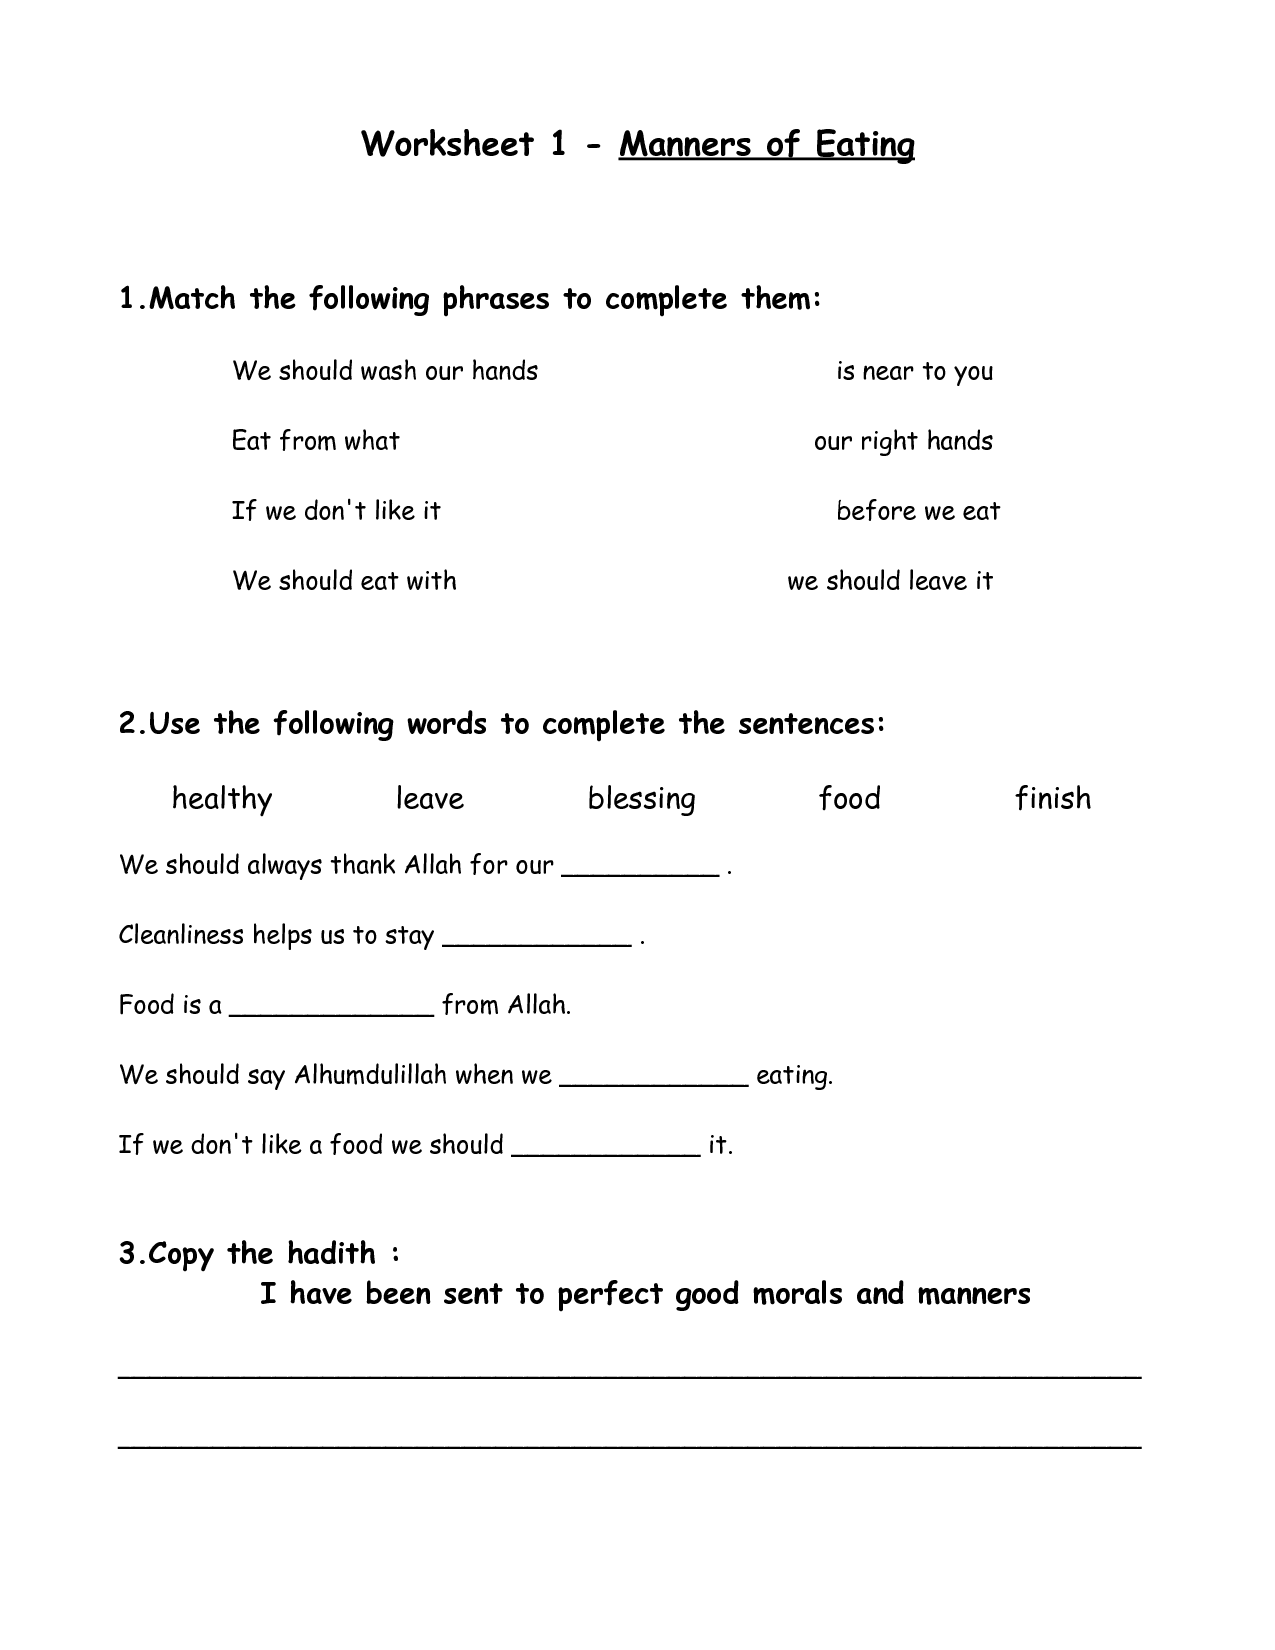 Printables Good Manners Worksheet table manners printable worksheets worksheet 1 of eating